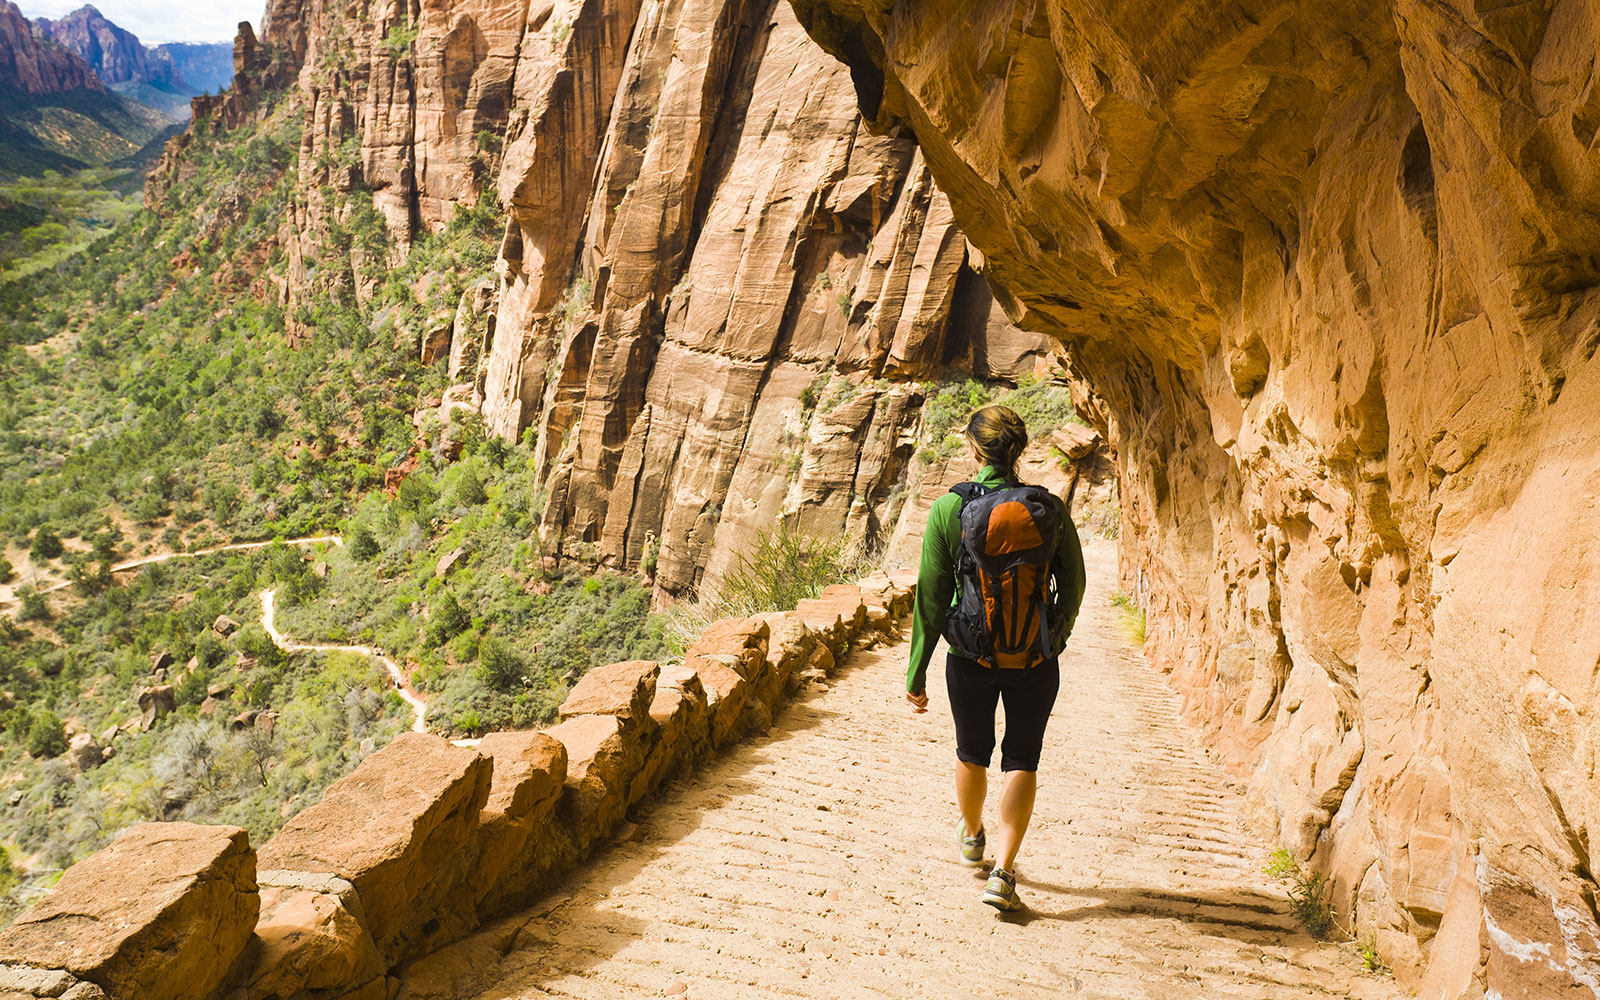 Hiking and Camping in Zion National Park